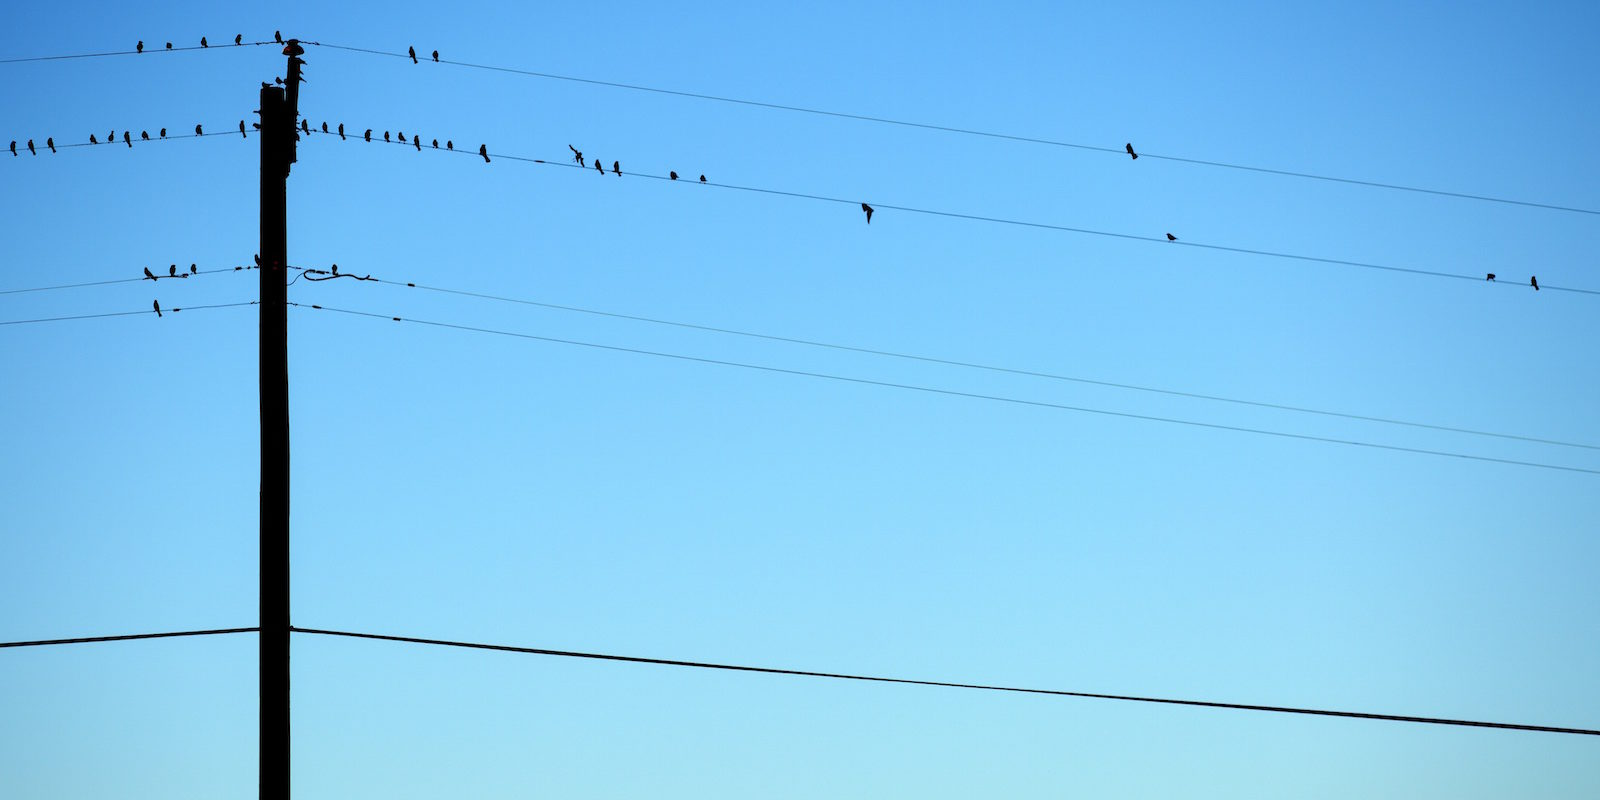 brids_on_wires